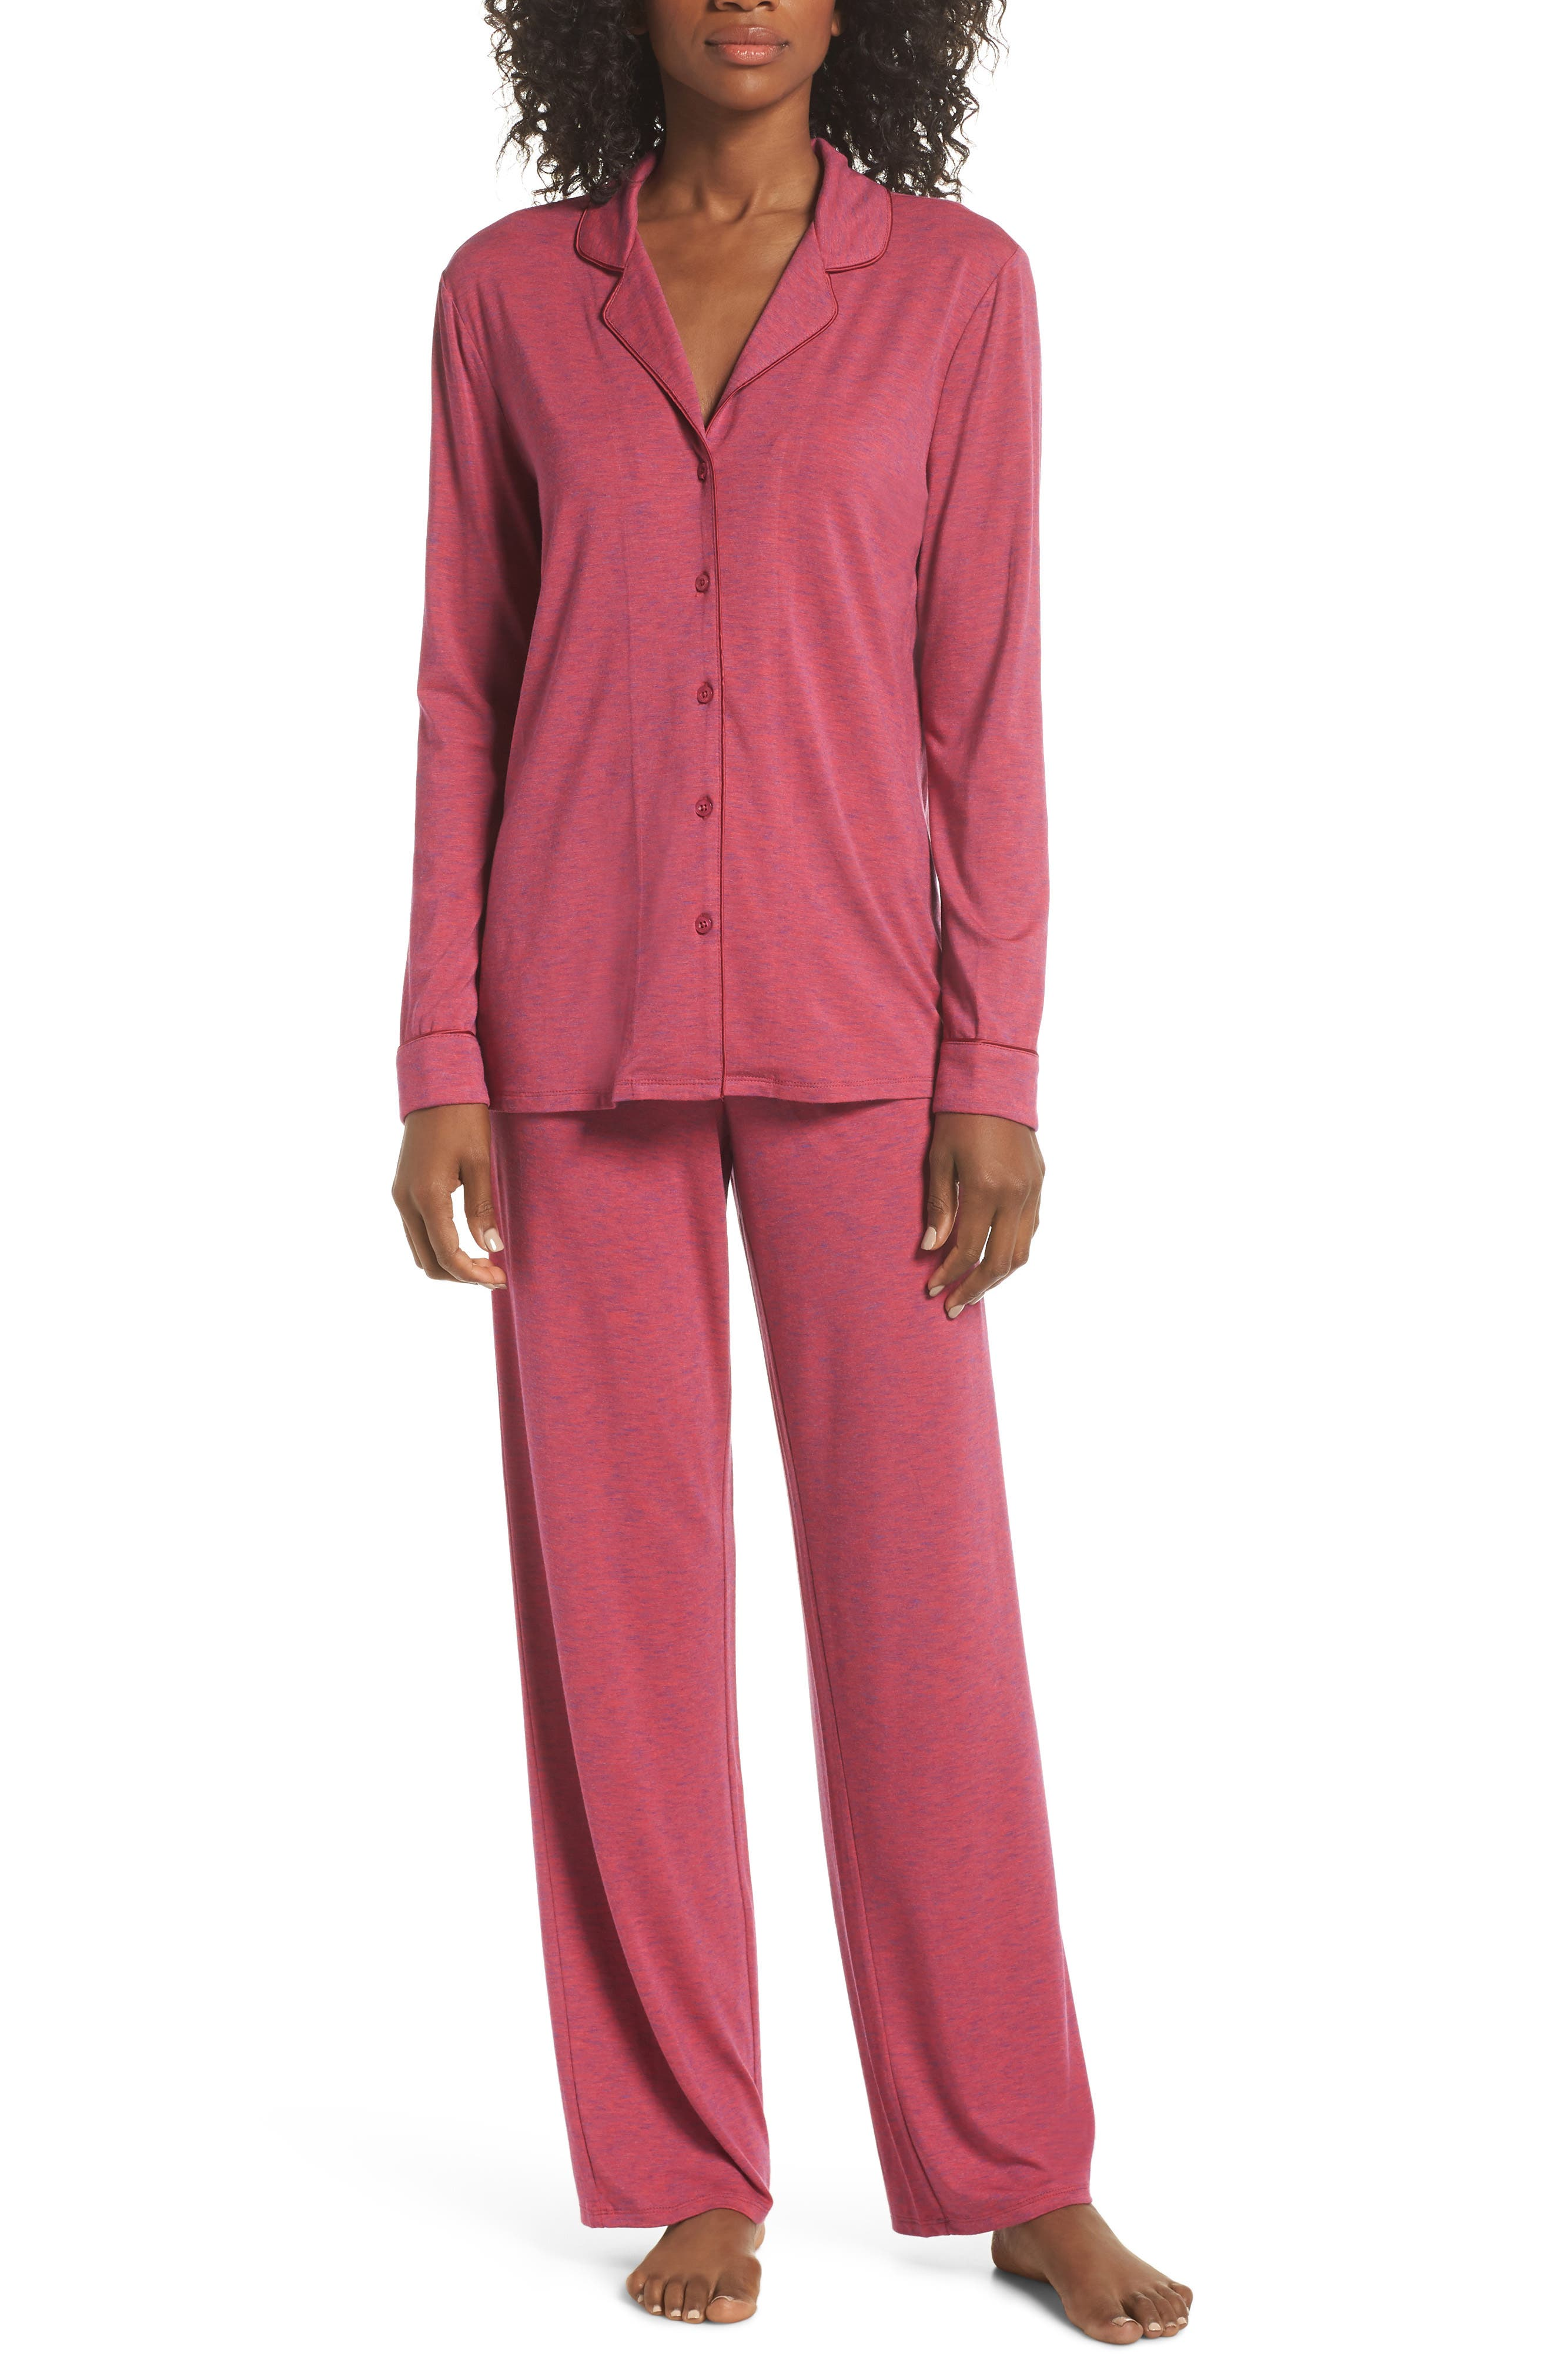 NORDSTROM LINGERIE,                             Moonlight Pajamas,                             Main thumbnail 1, color,                             BURGUNDY SPACEDYE